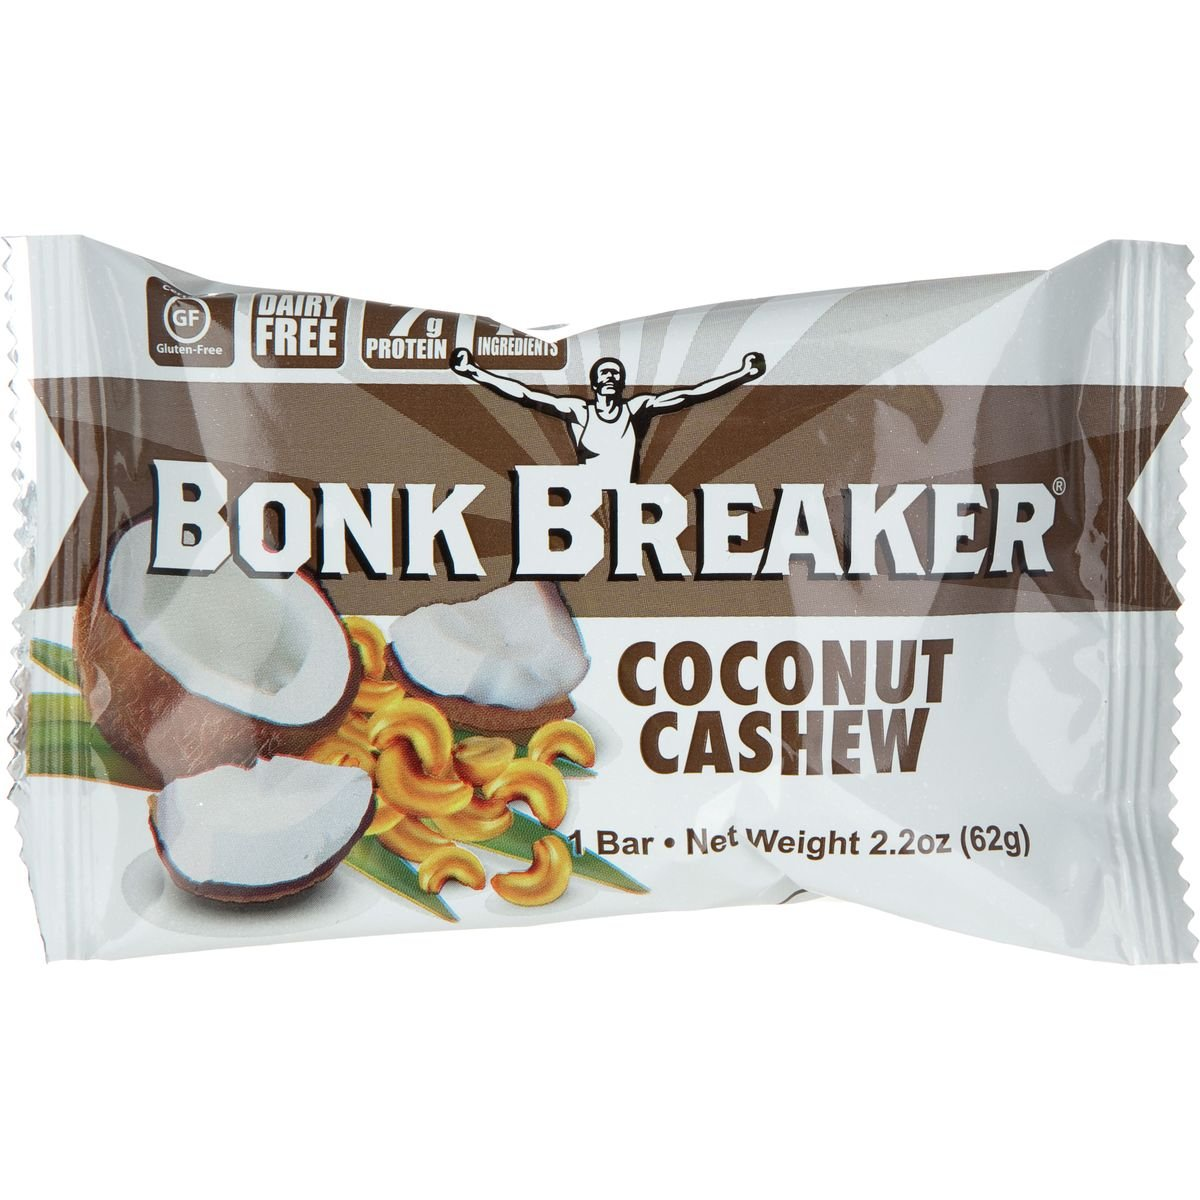 Bonk Breaker Energy Bar - Coconut Cashew - 2.2 Oz - Case Of 12 by Bonk Breaker